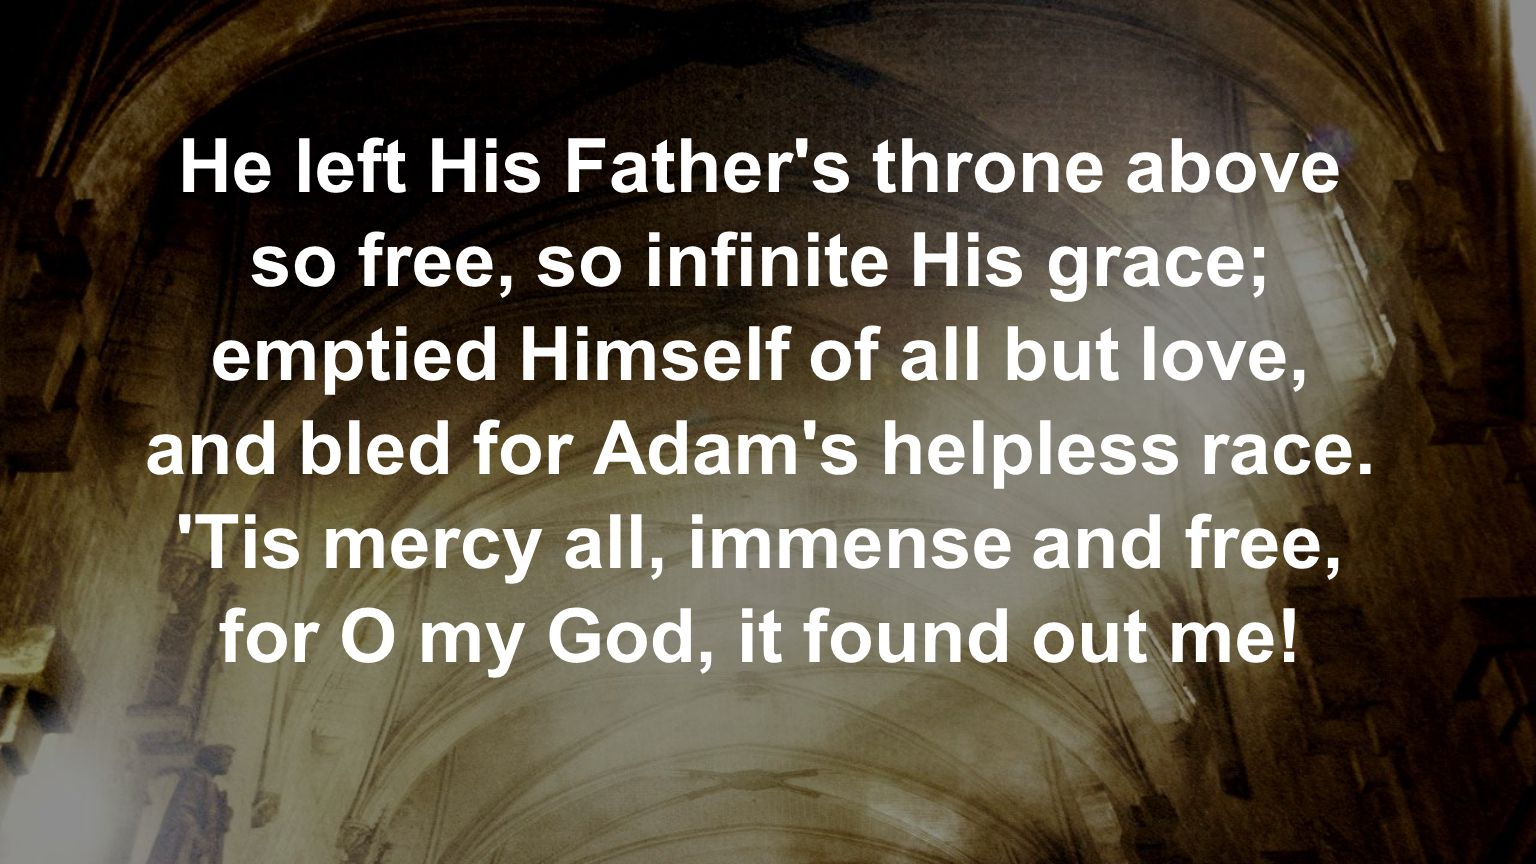 He left His Father s throne above so free, so infinite His grace;